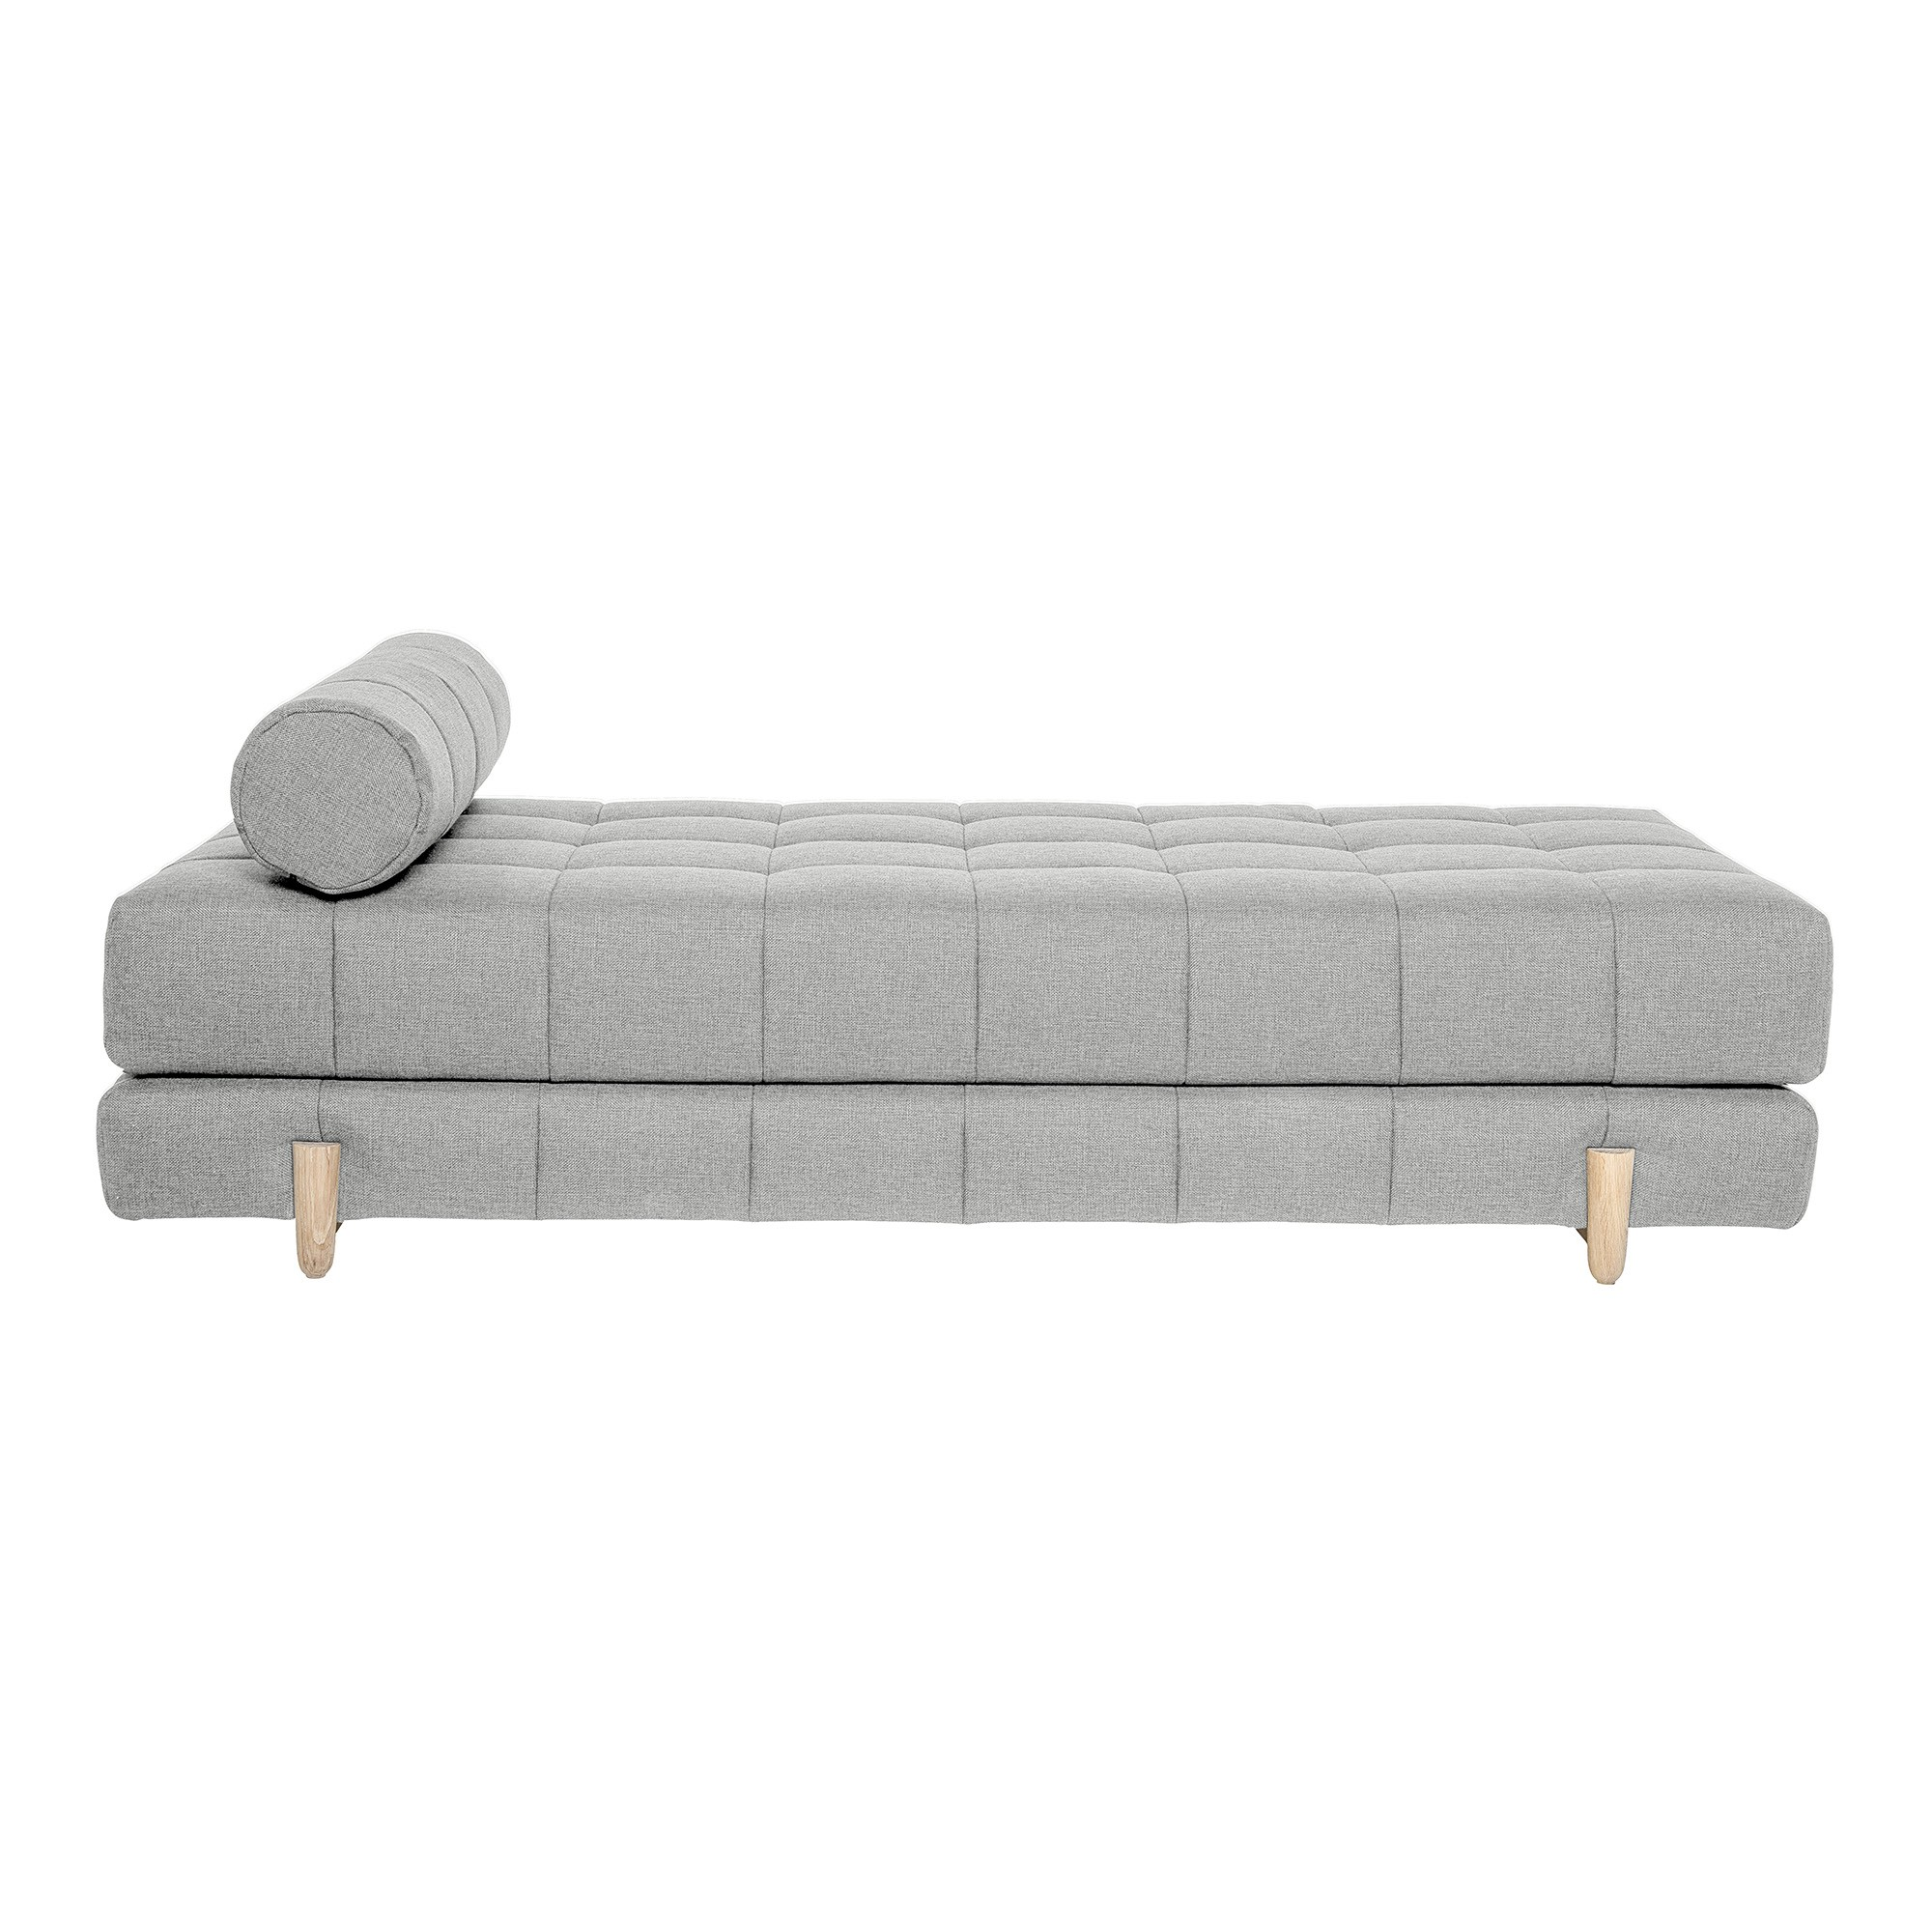 Image of   Bloomingville bulky daybed (lysegrå)